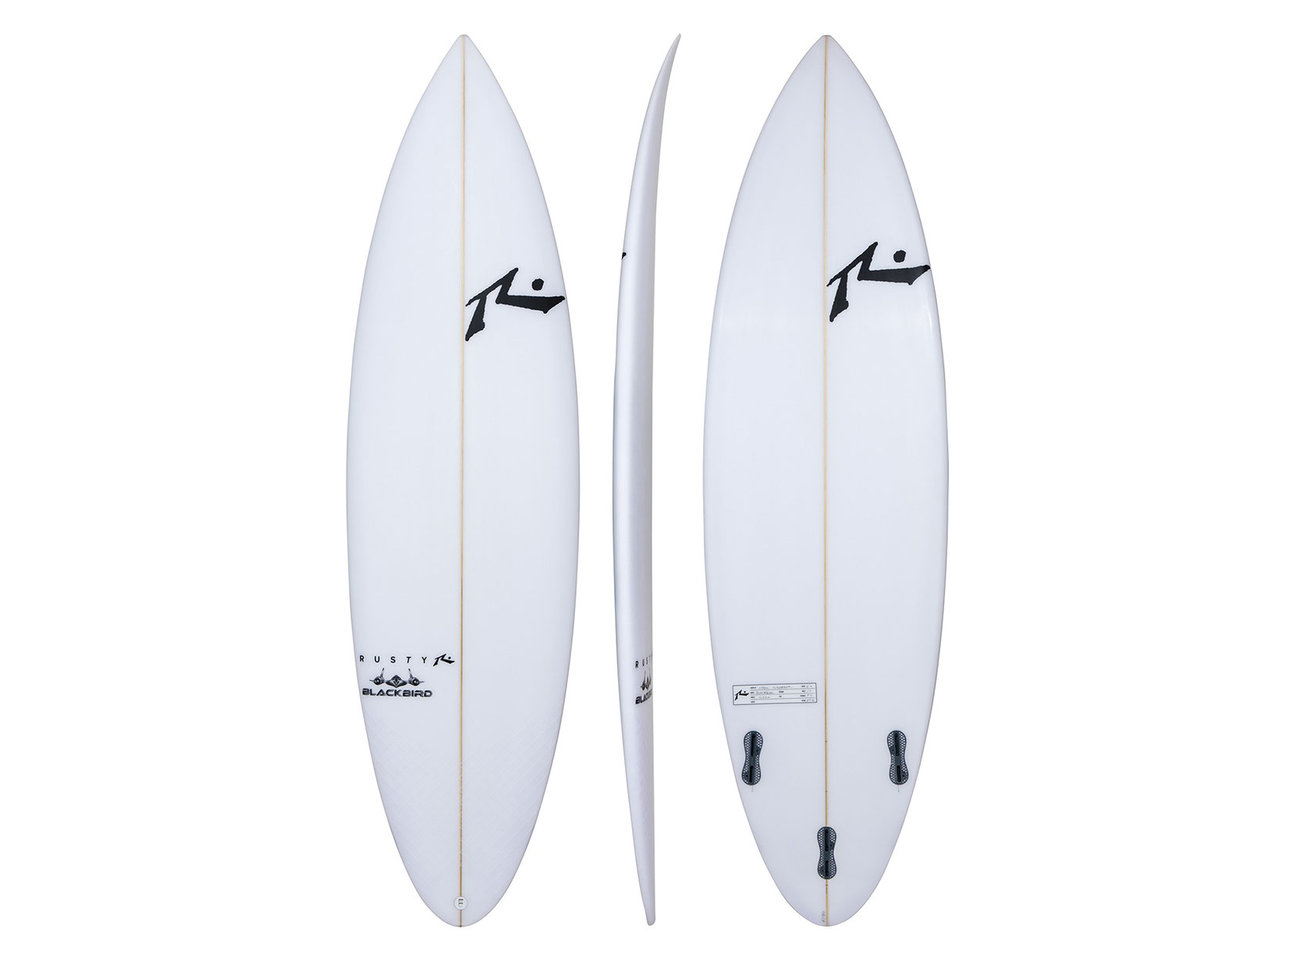 rusty-blackbird-board-SURFGEAR0816.jpg